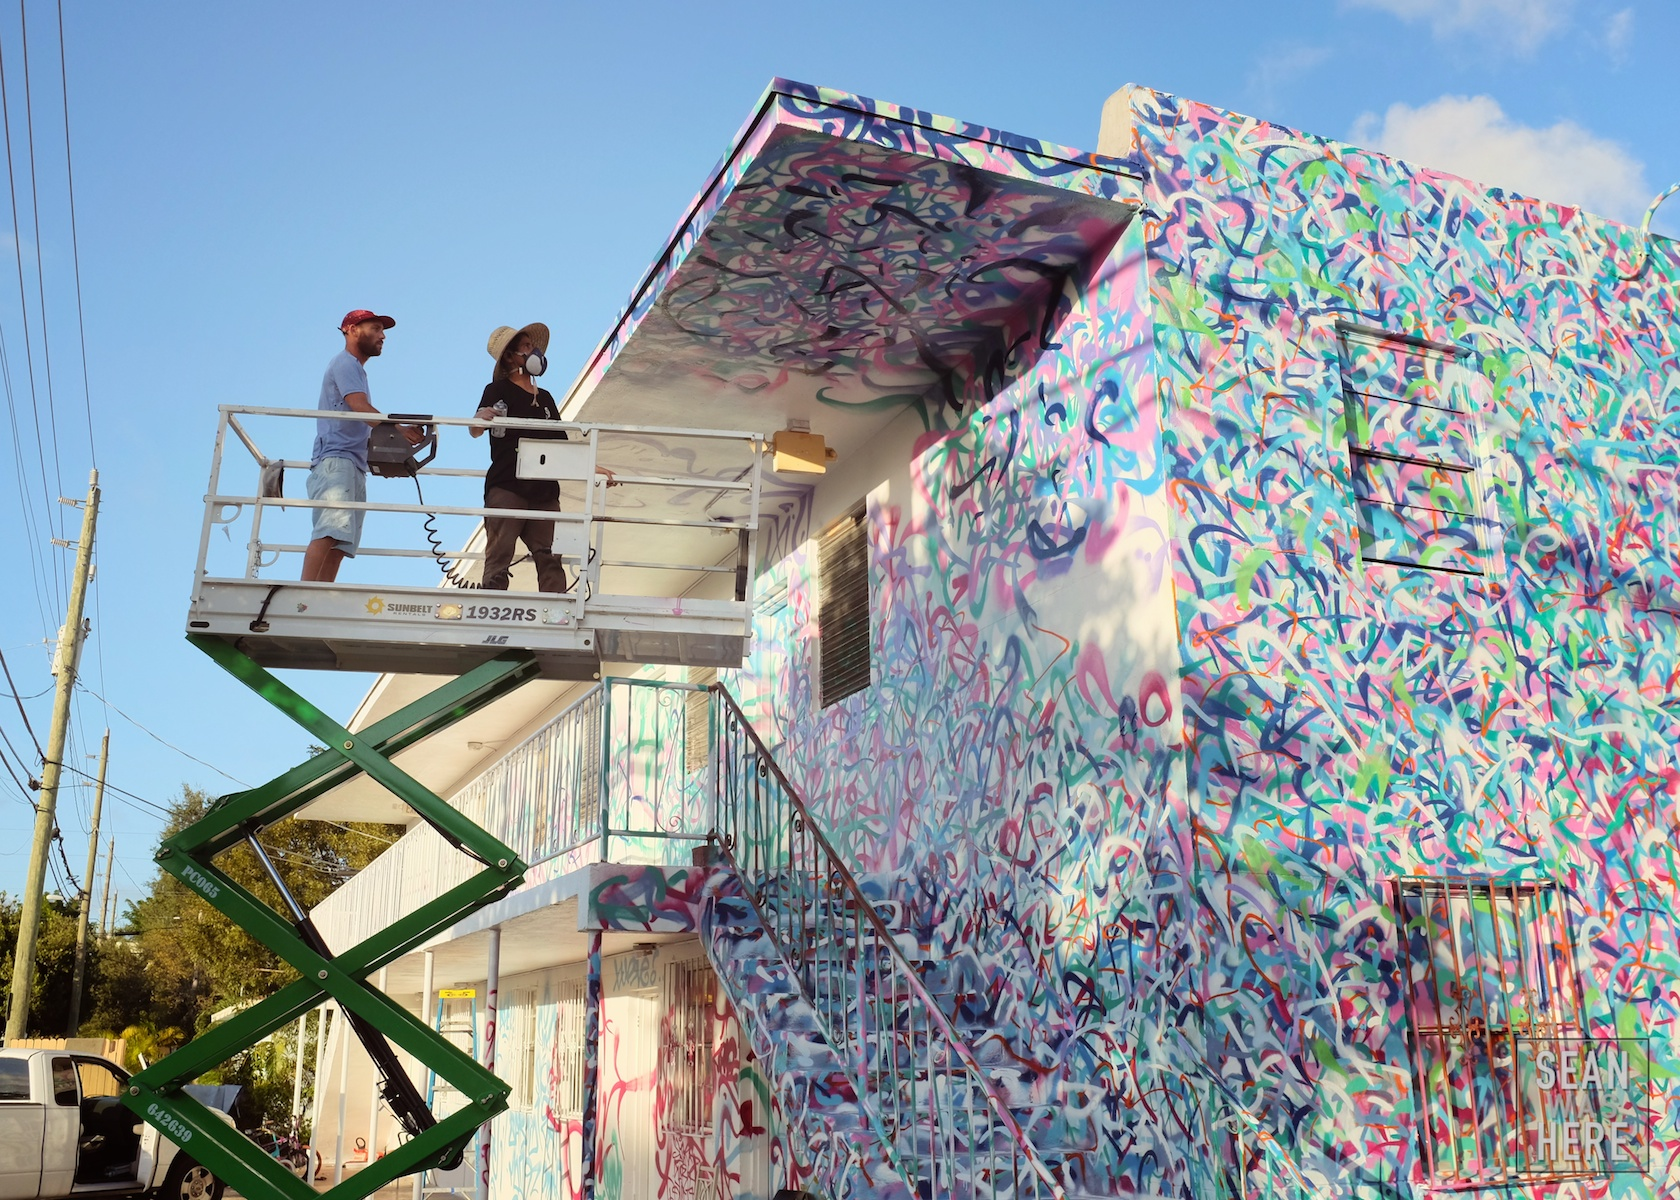 Rafael Sliks, from São Paulo Brazil, painting an entire multi-unit house with some crazy style. Wynwood Miami